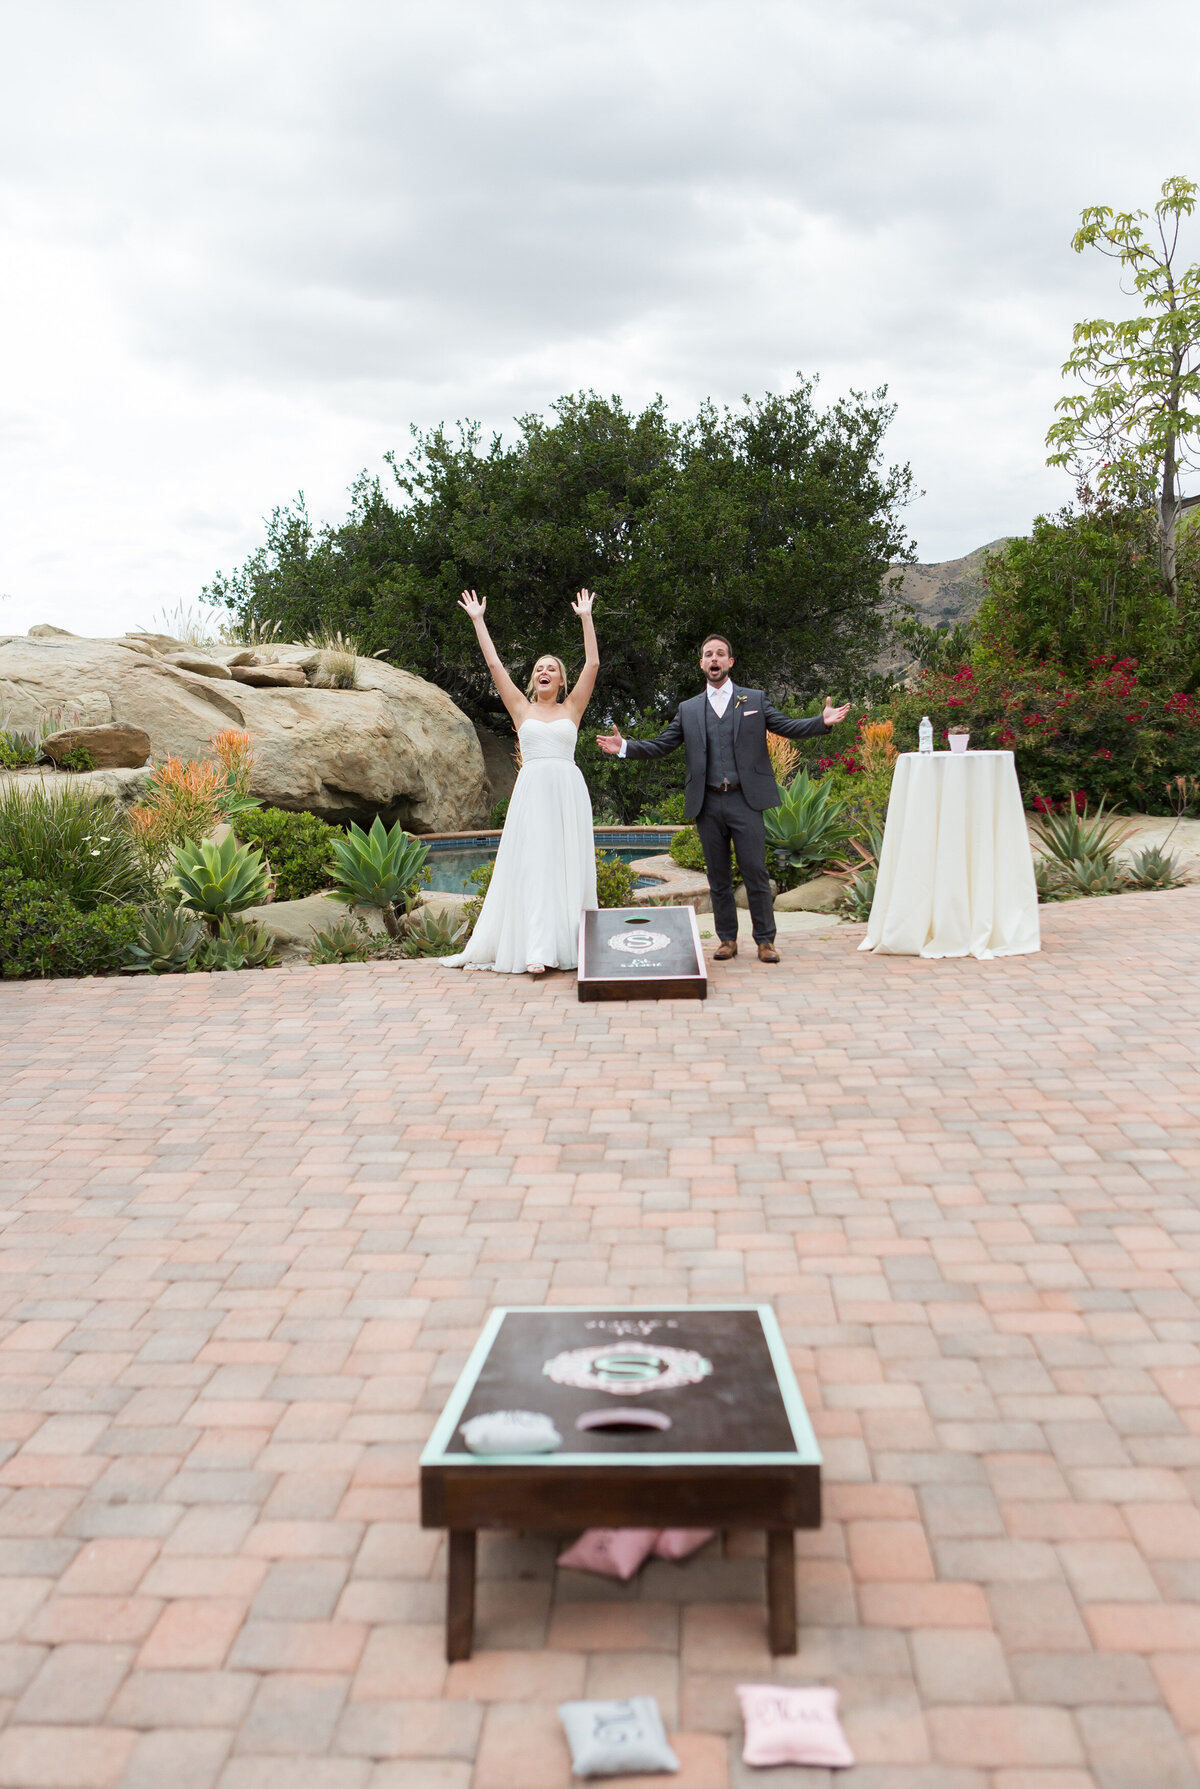 039_Hummingbird_Nest_Ranch_0350_Christina_Rick_Wedding_1486